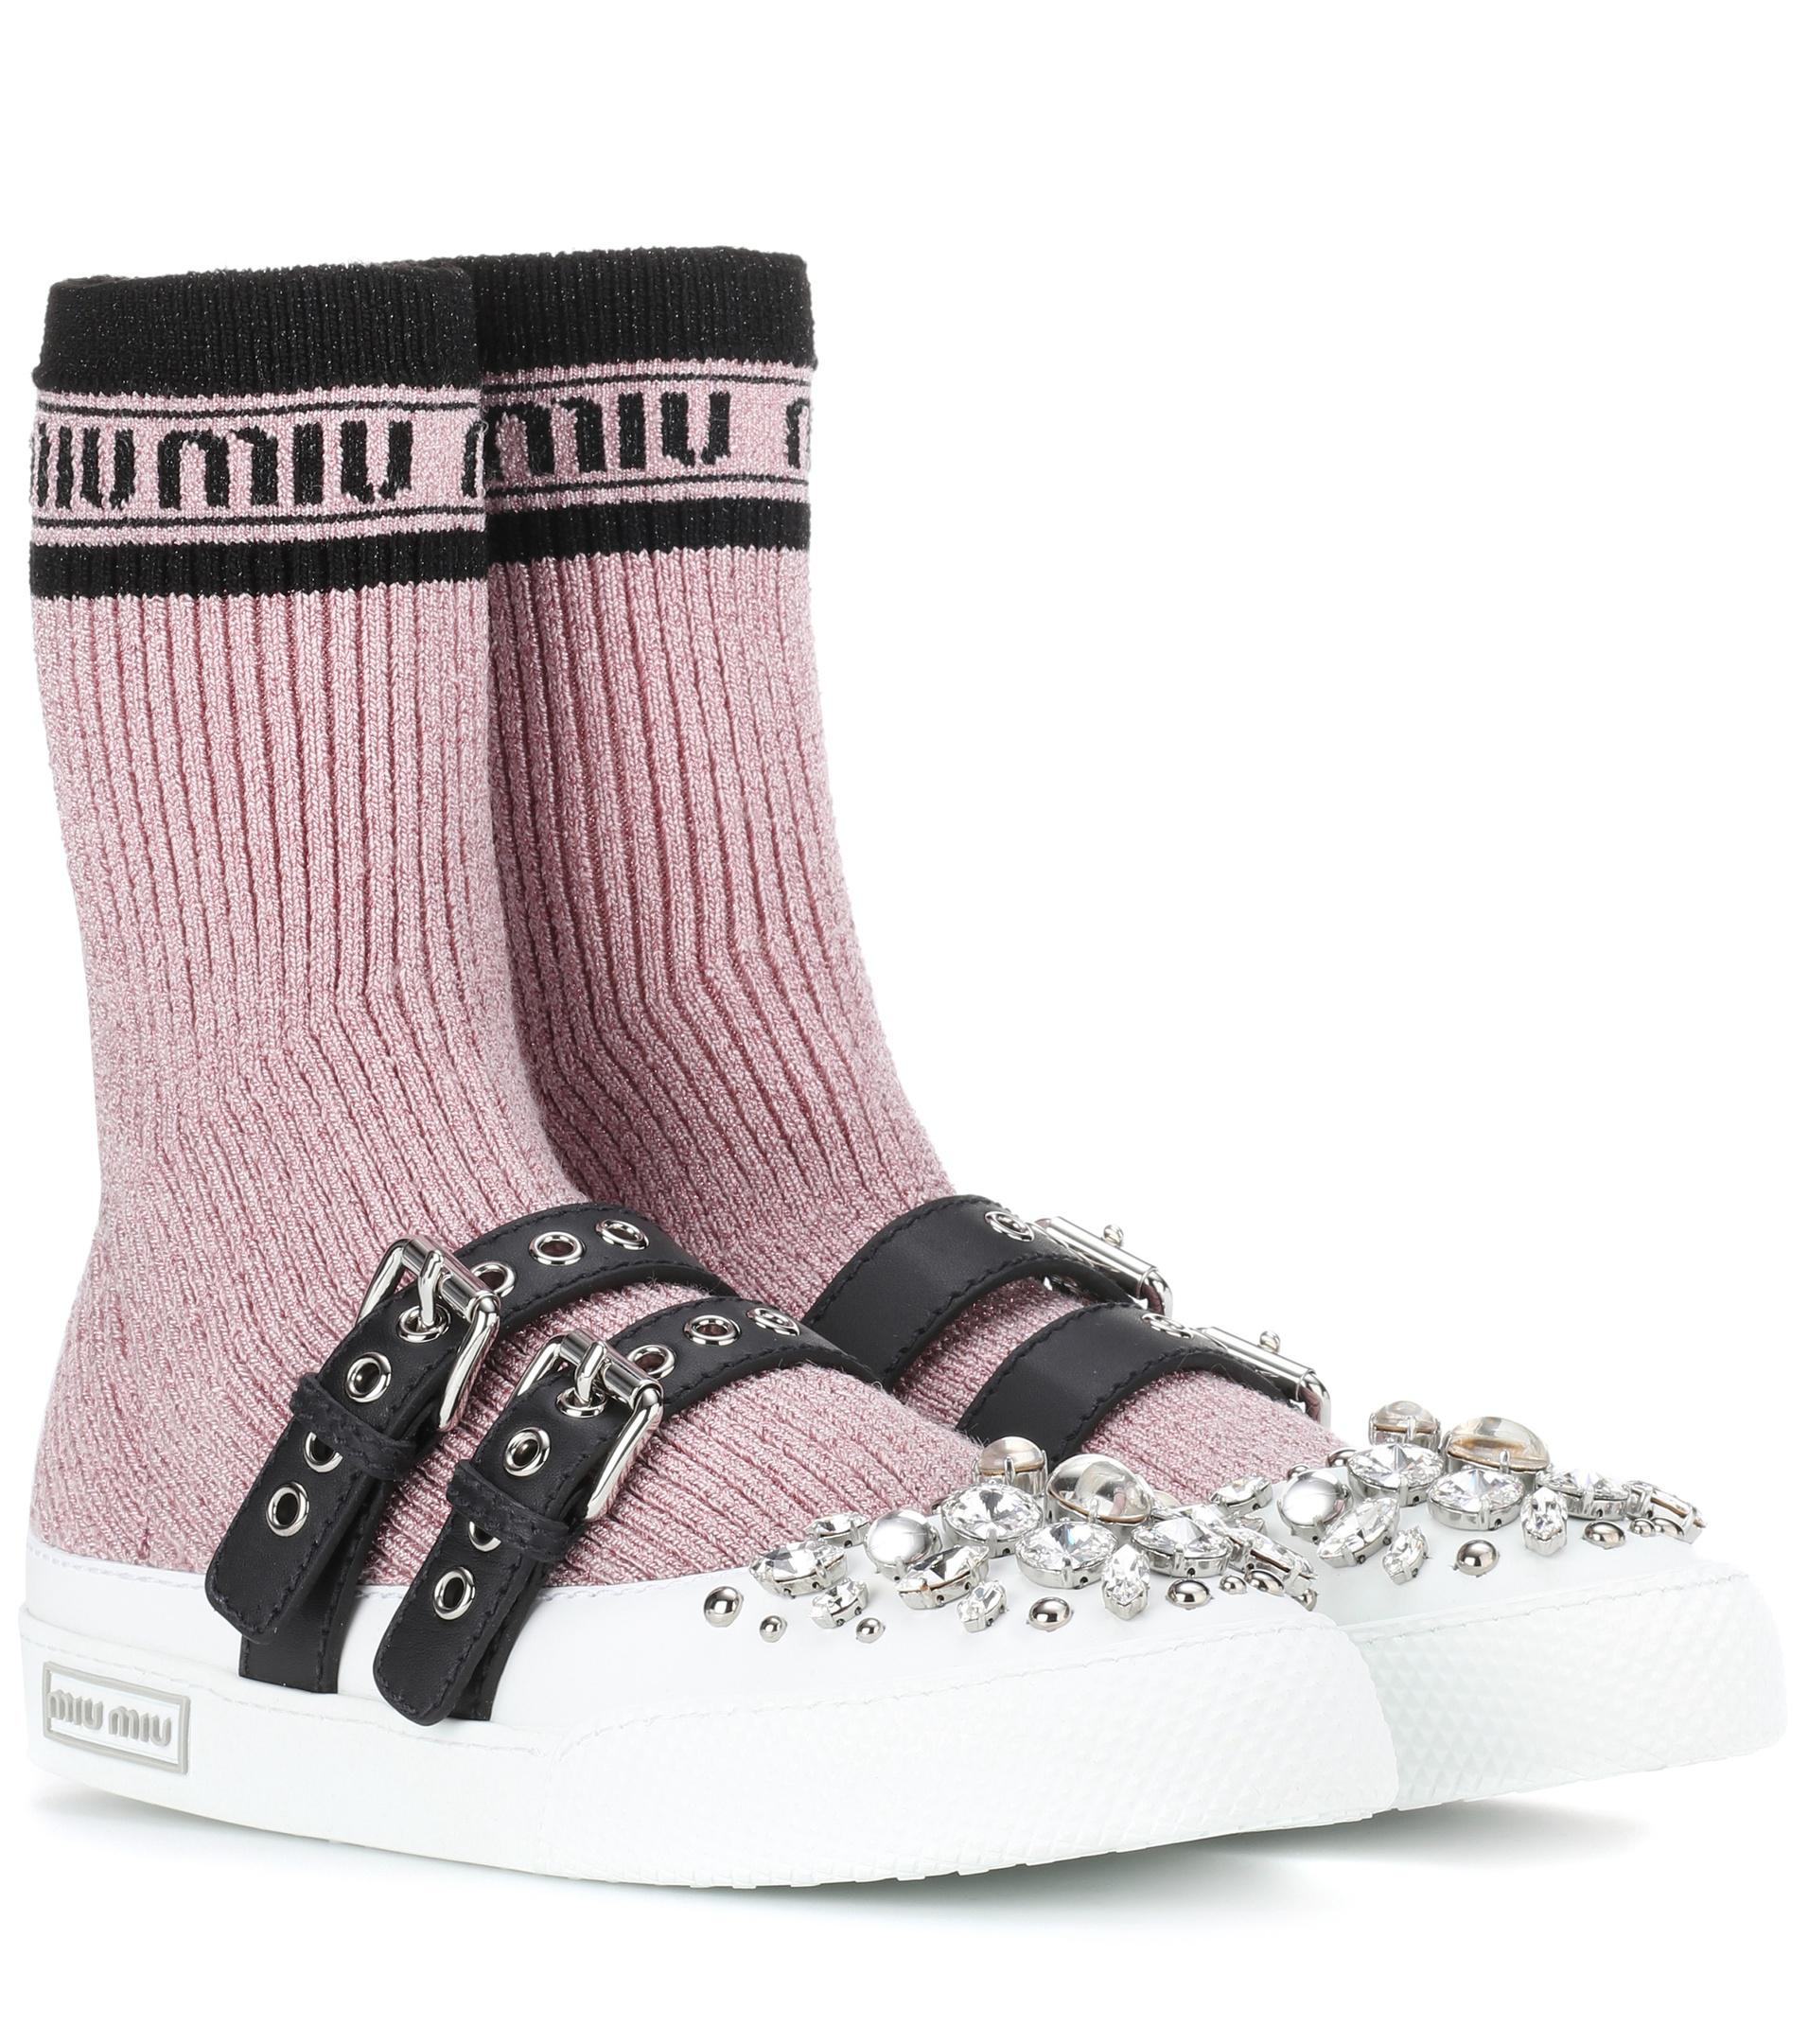 cheap sale hot sale Miu Miu Embellished knit sneakers sneakernews online buy cheap pick a best free shipping websites cheap sale browse iuej4NQf